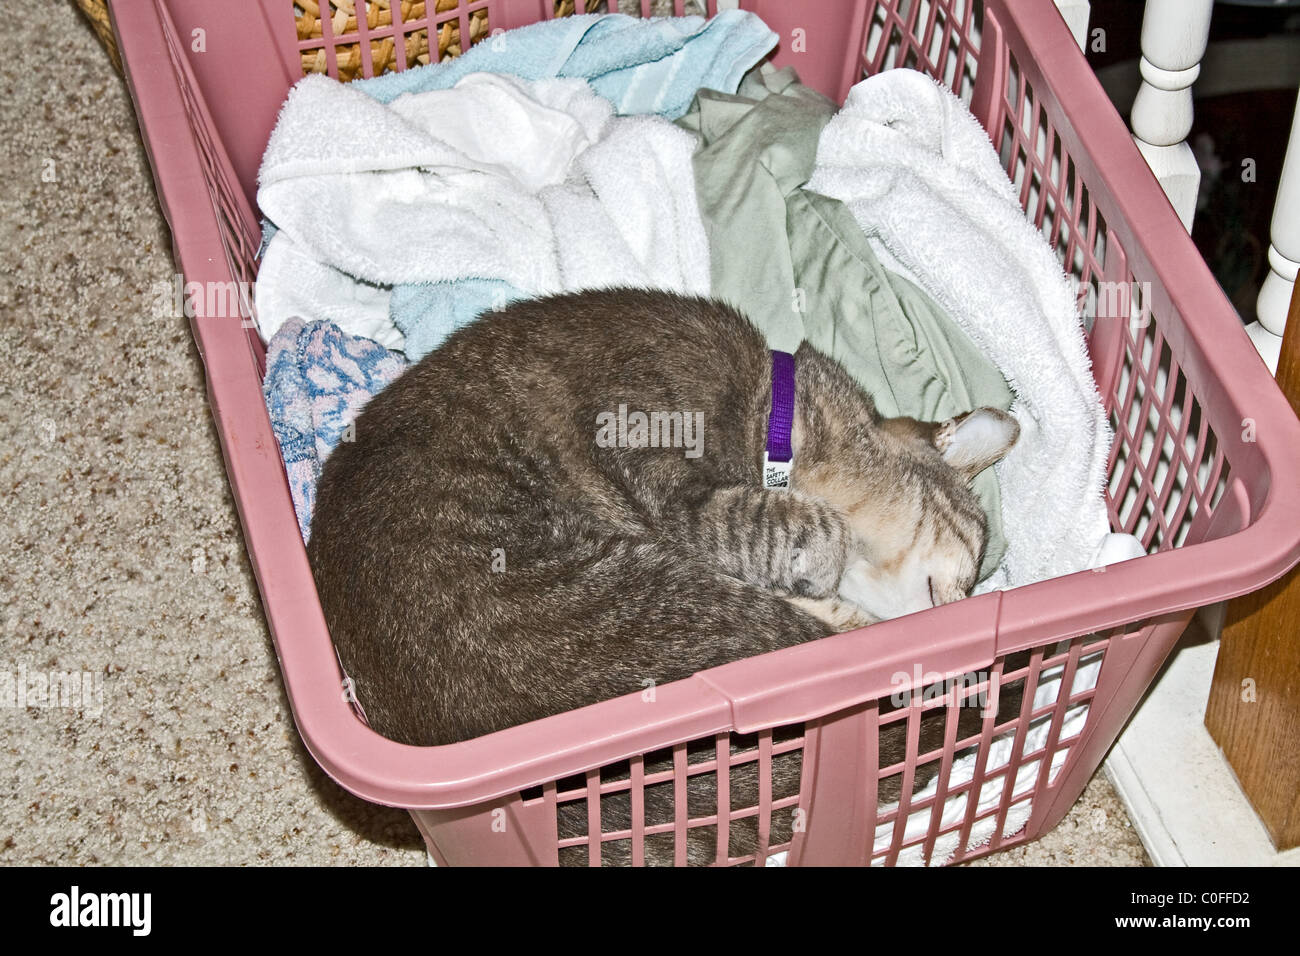 cat sleeping among the clothes in a laundry basket stock photo